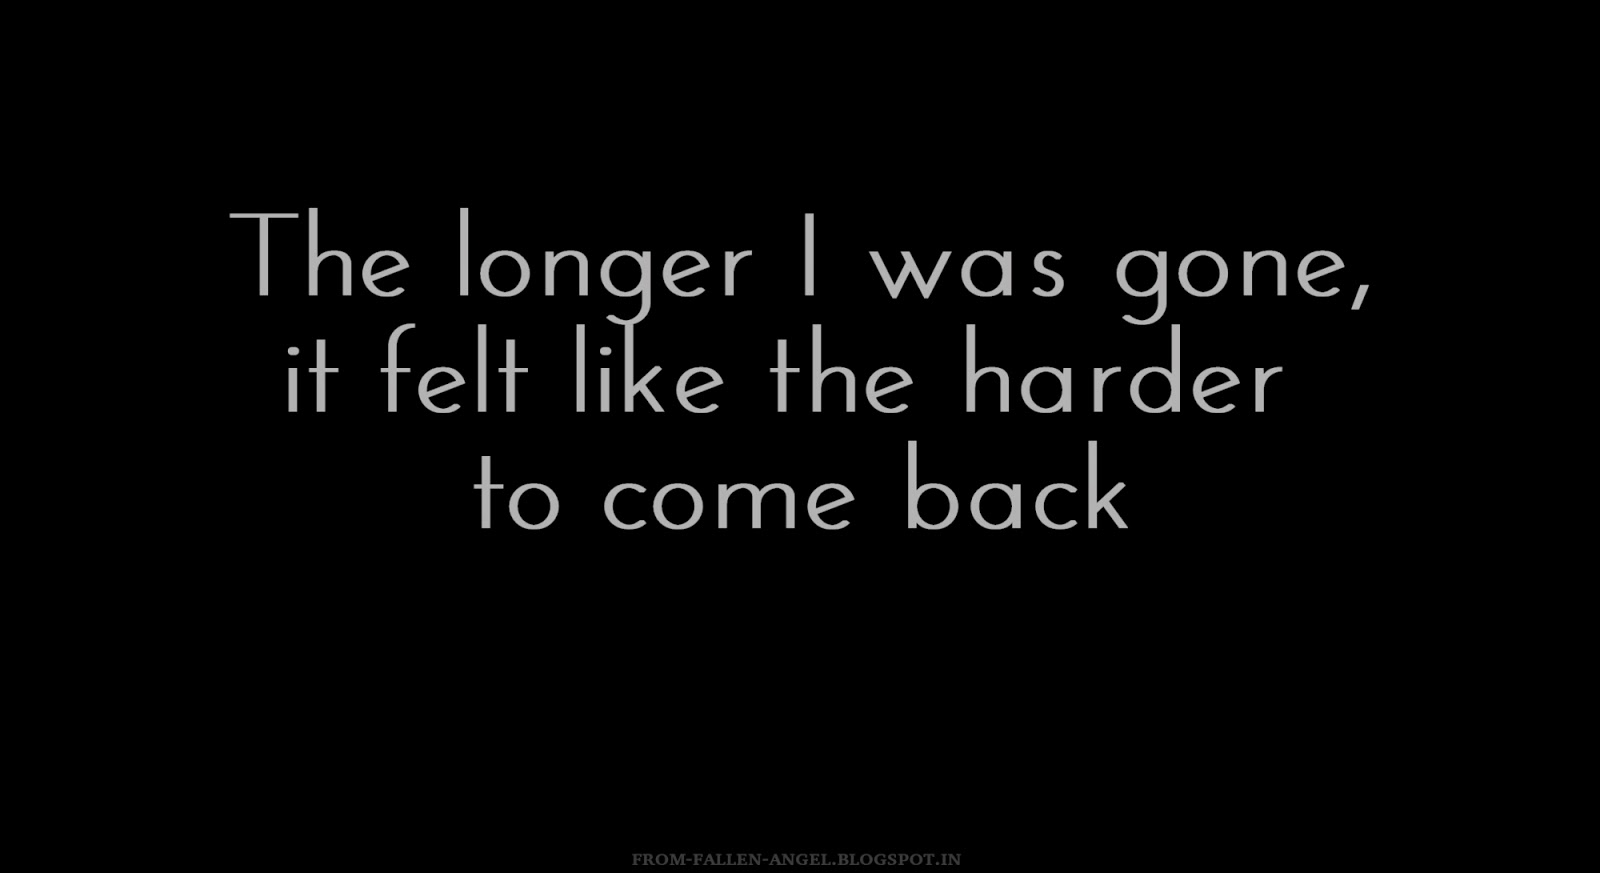 The longer I was gone, it felt like the harder to come back